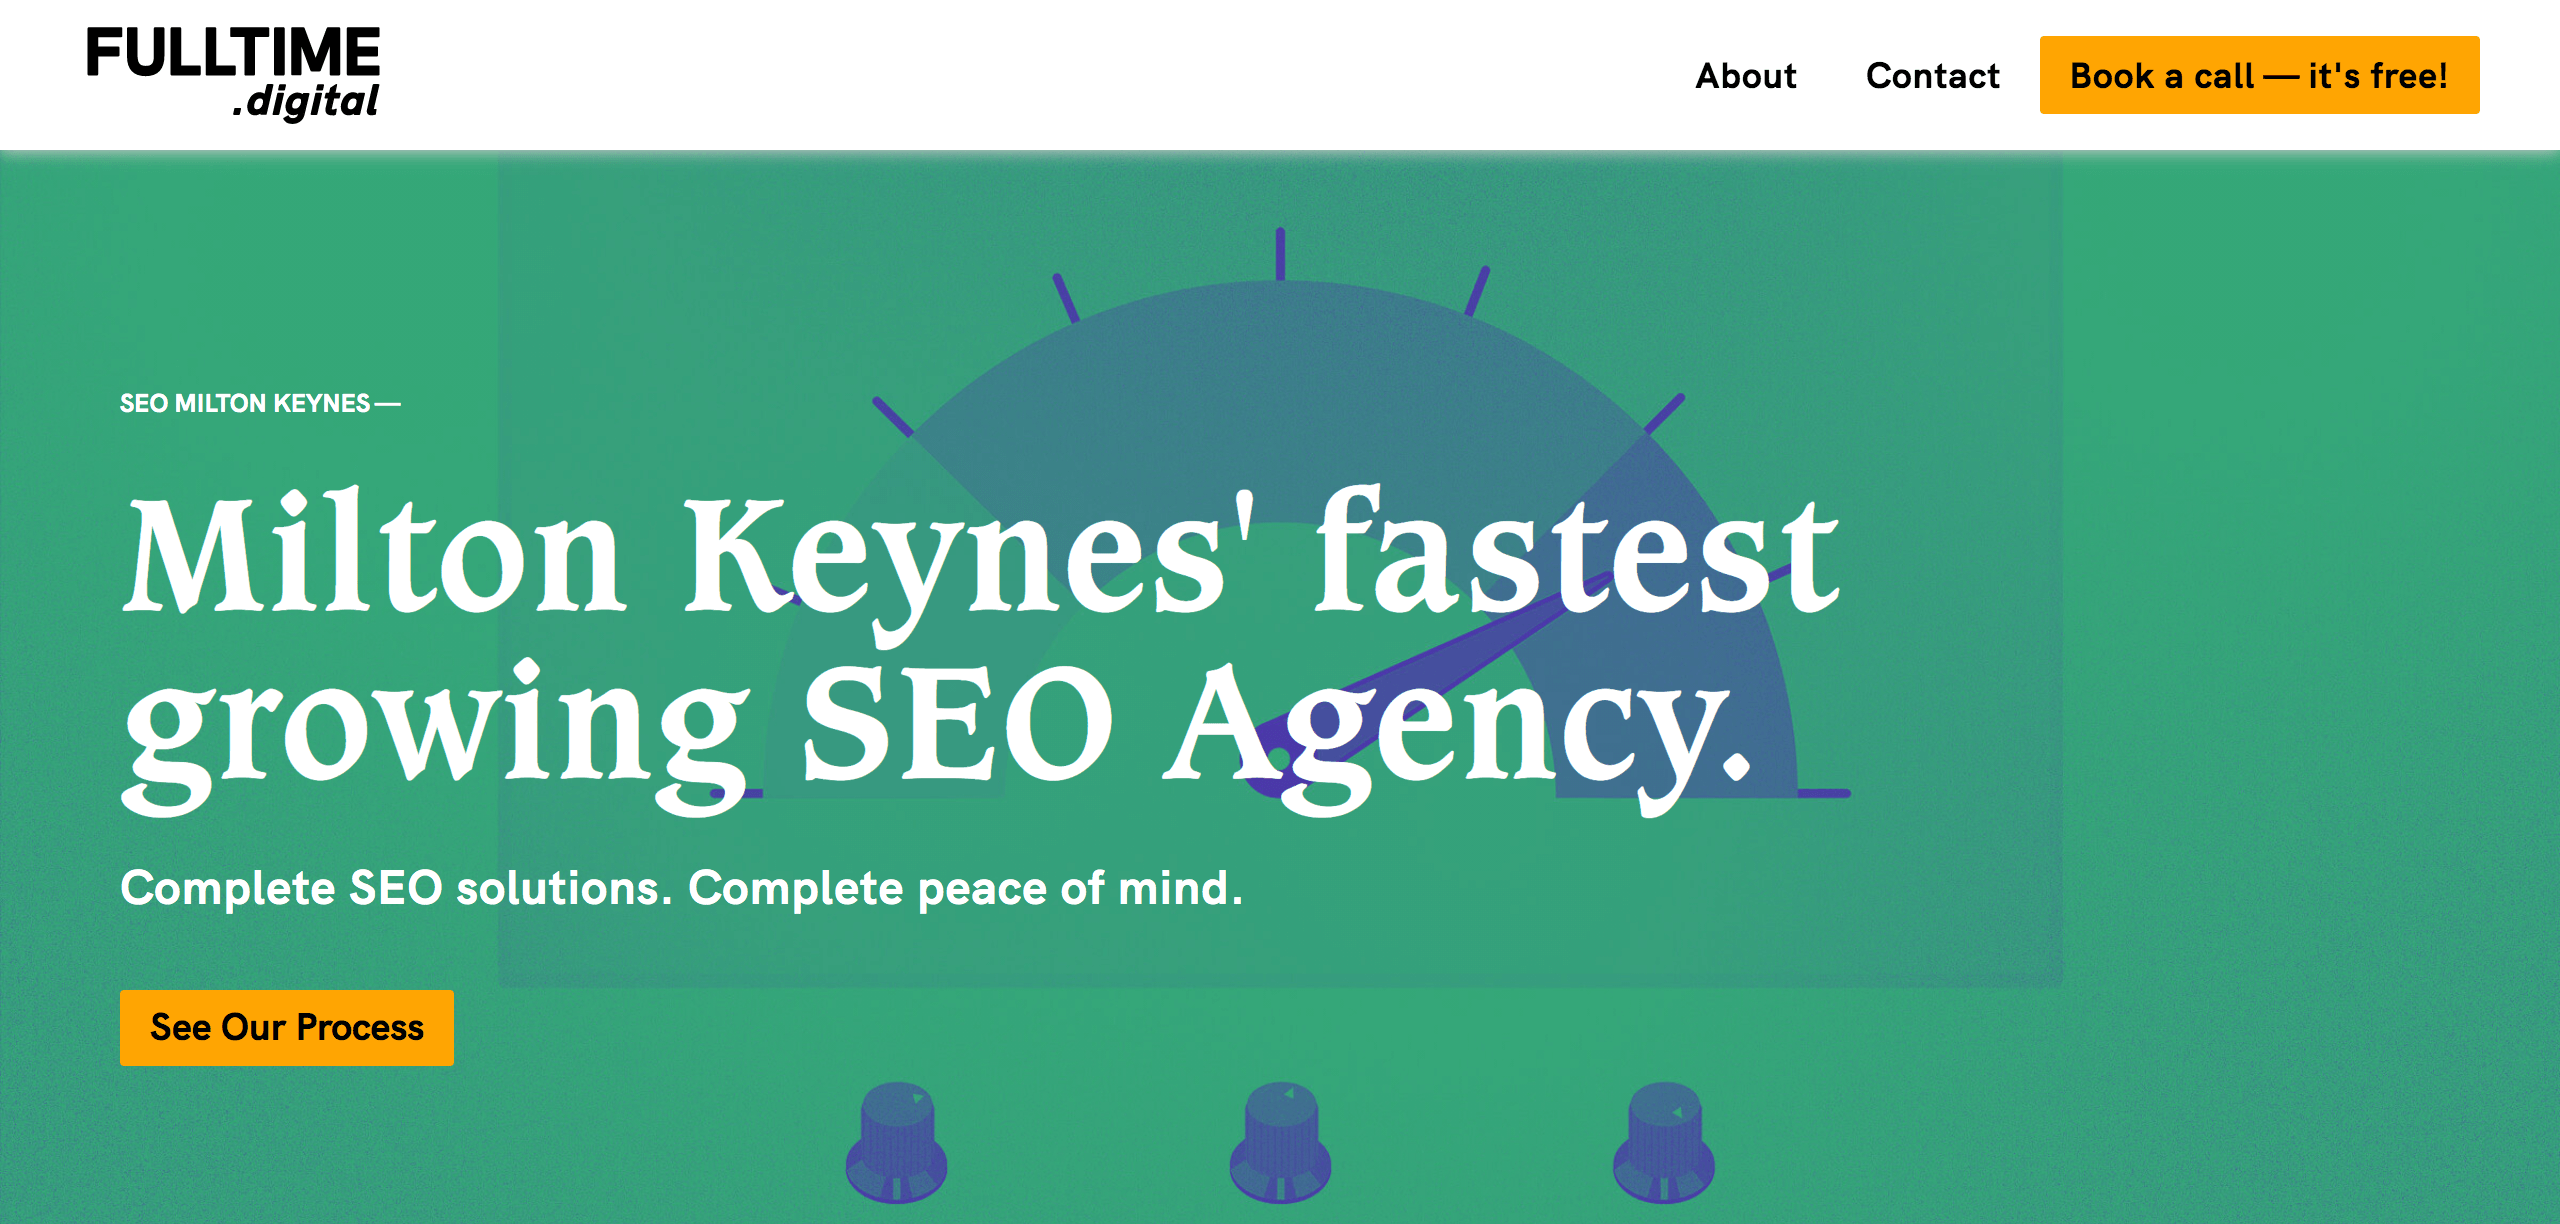 SEO services page hero section, example for H1 tag